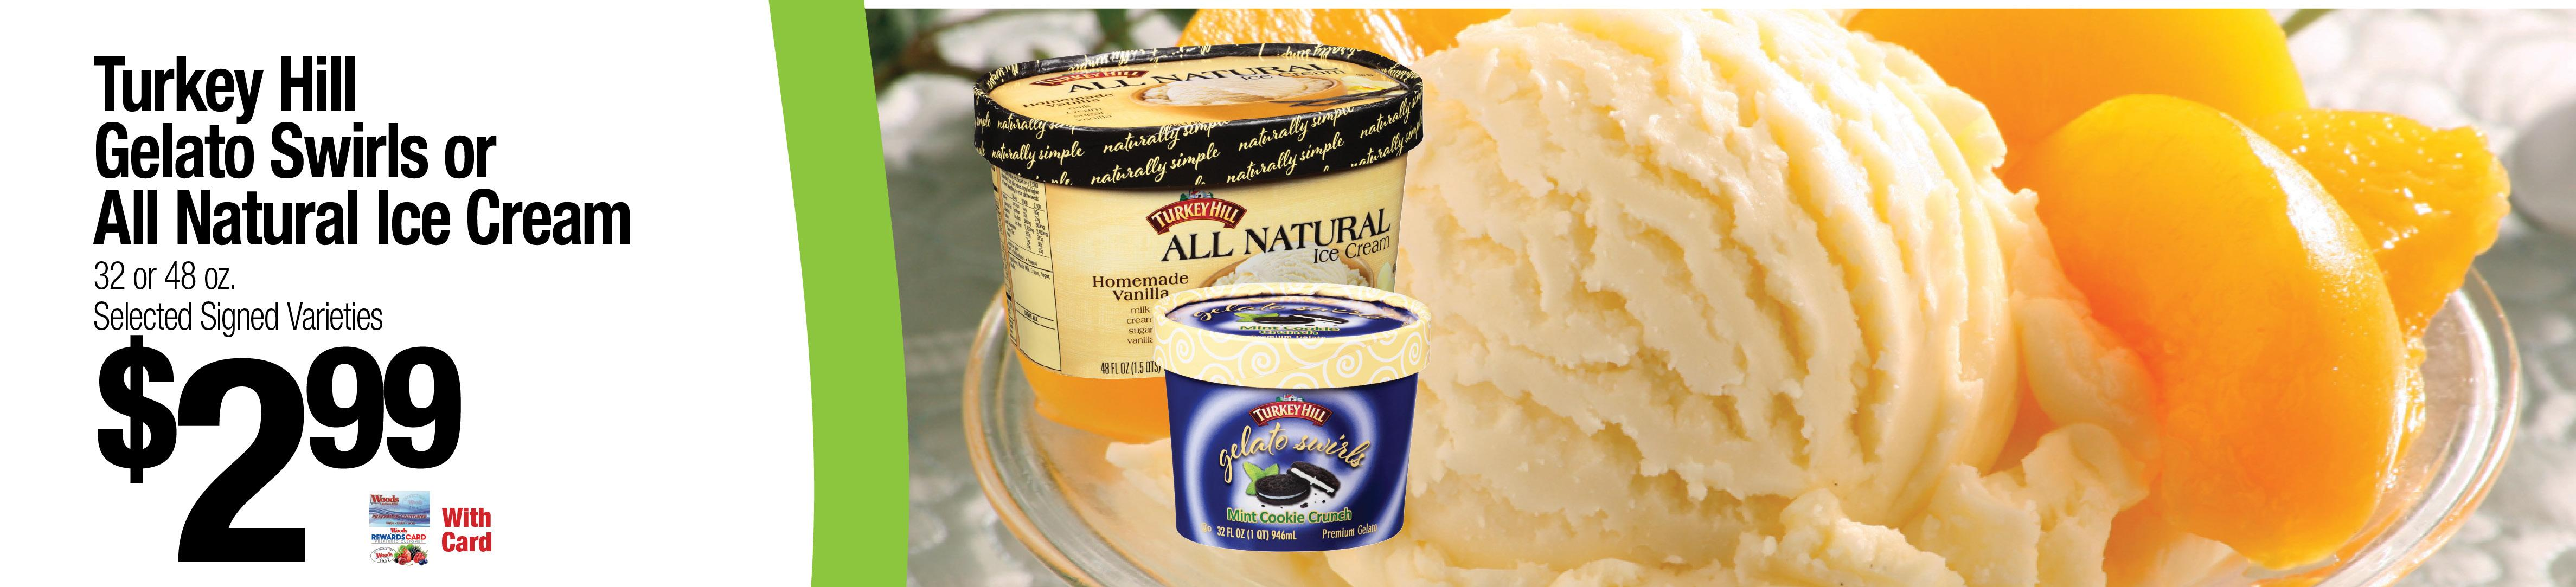 Turkey Hill Gelato Swirls or All Natural Ice Cream - $2.99